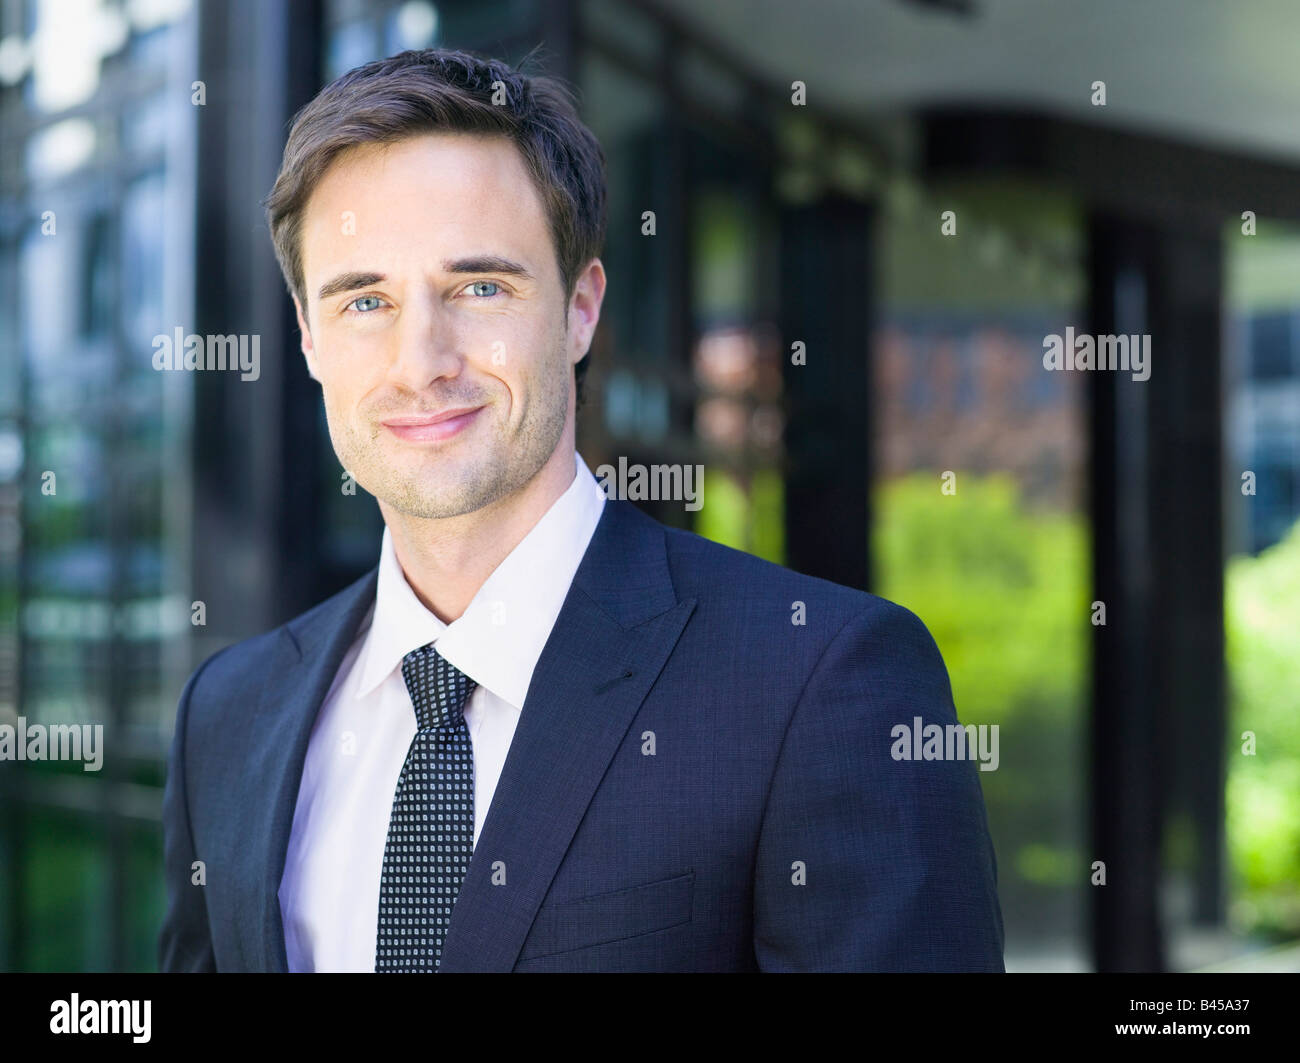 Allemagne, Baden-Württemberg, Stuttgart, businessman, portrait Photo Stock